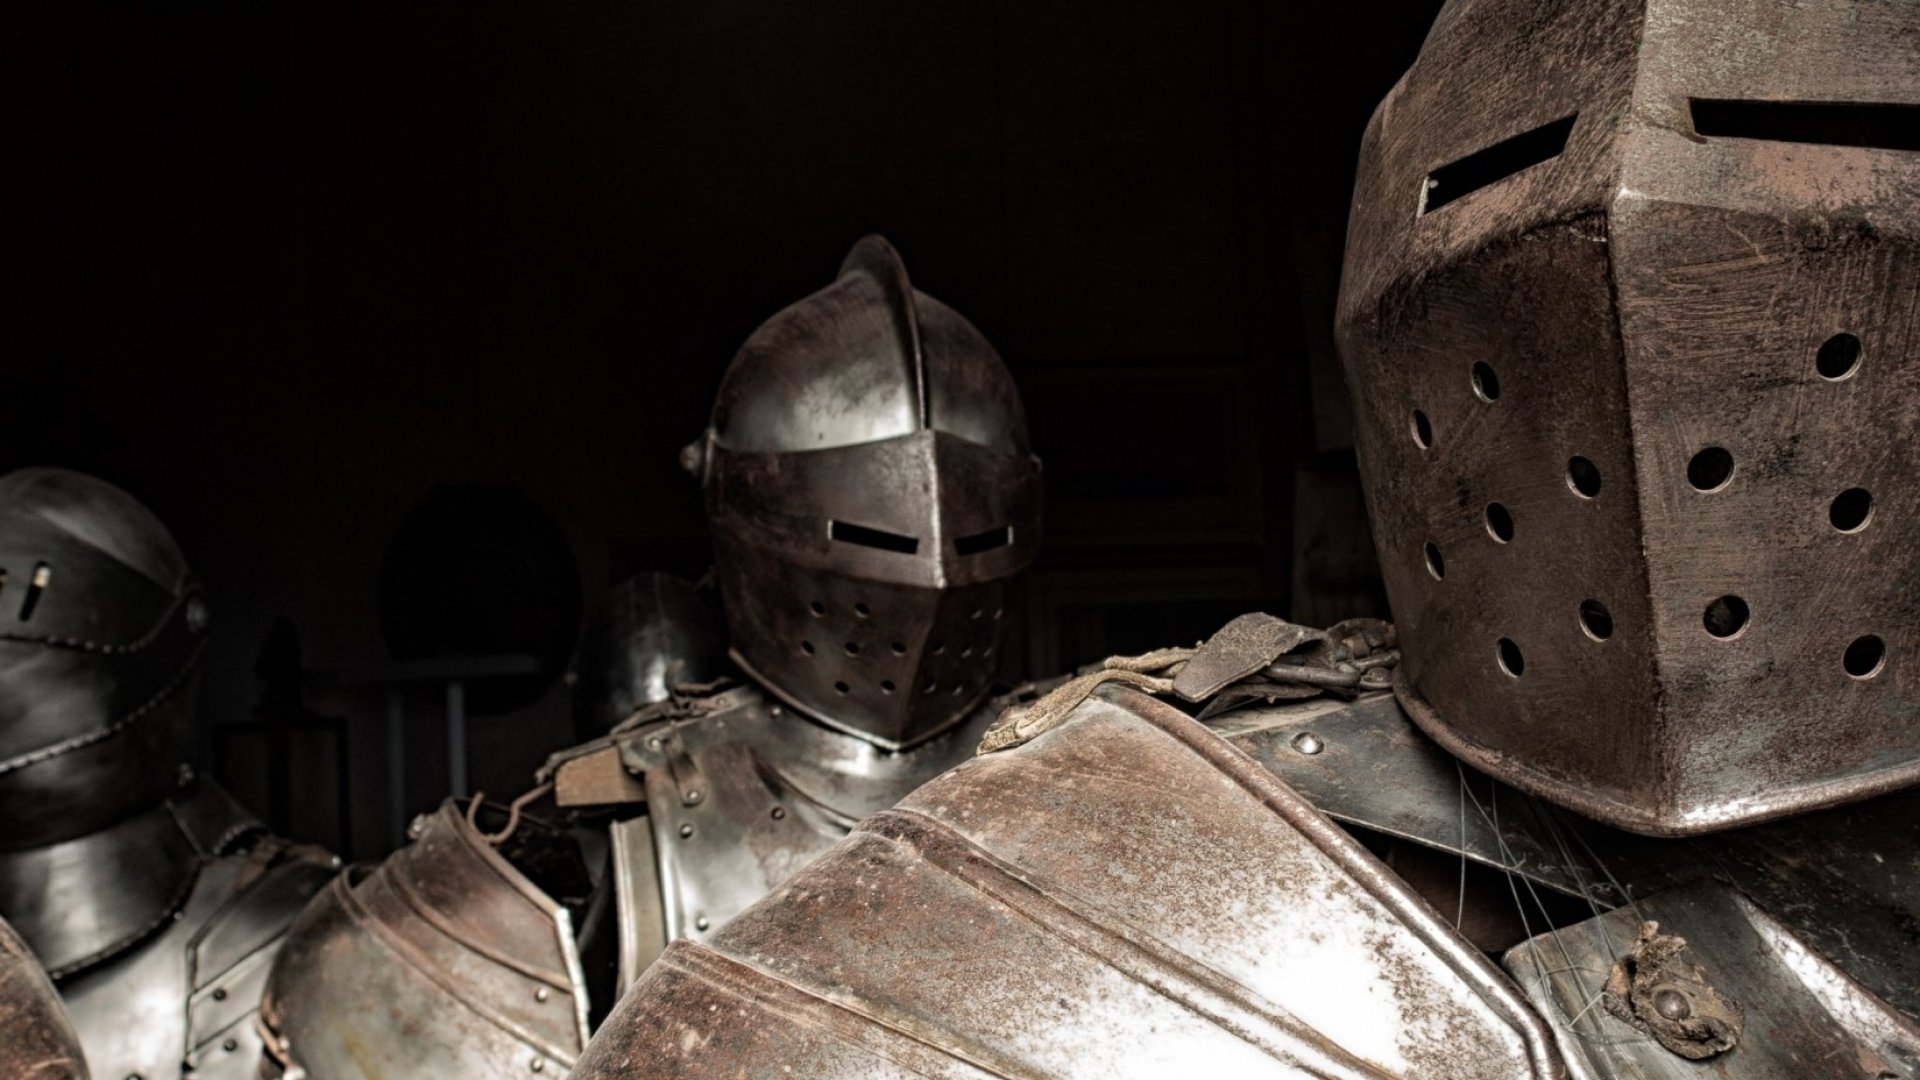 How This Marine Corps Veteran Turned a Passion for Medieval Combat Into a Thriving Business